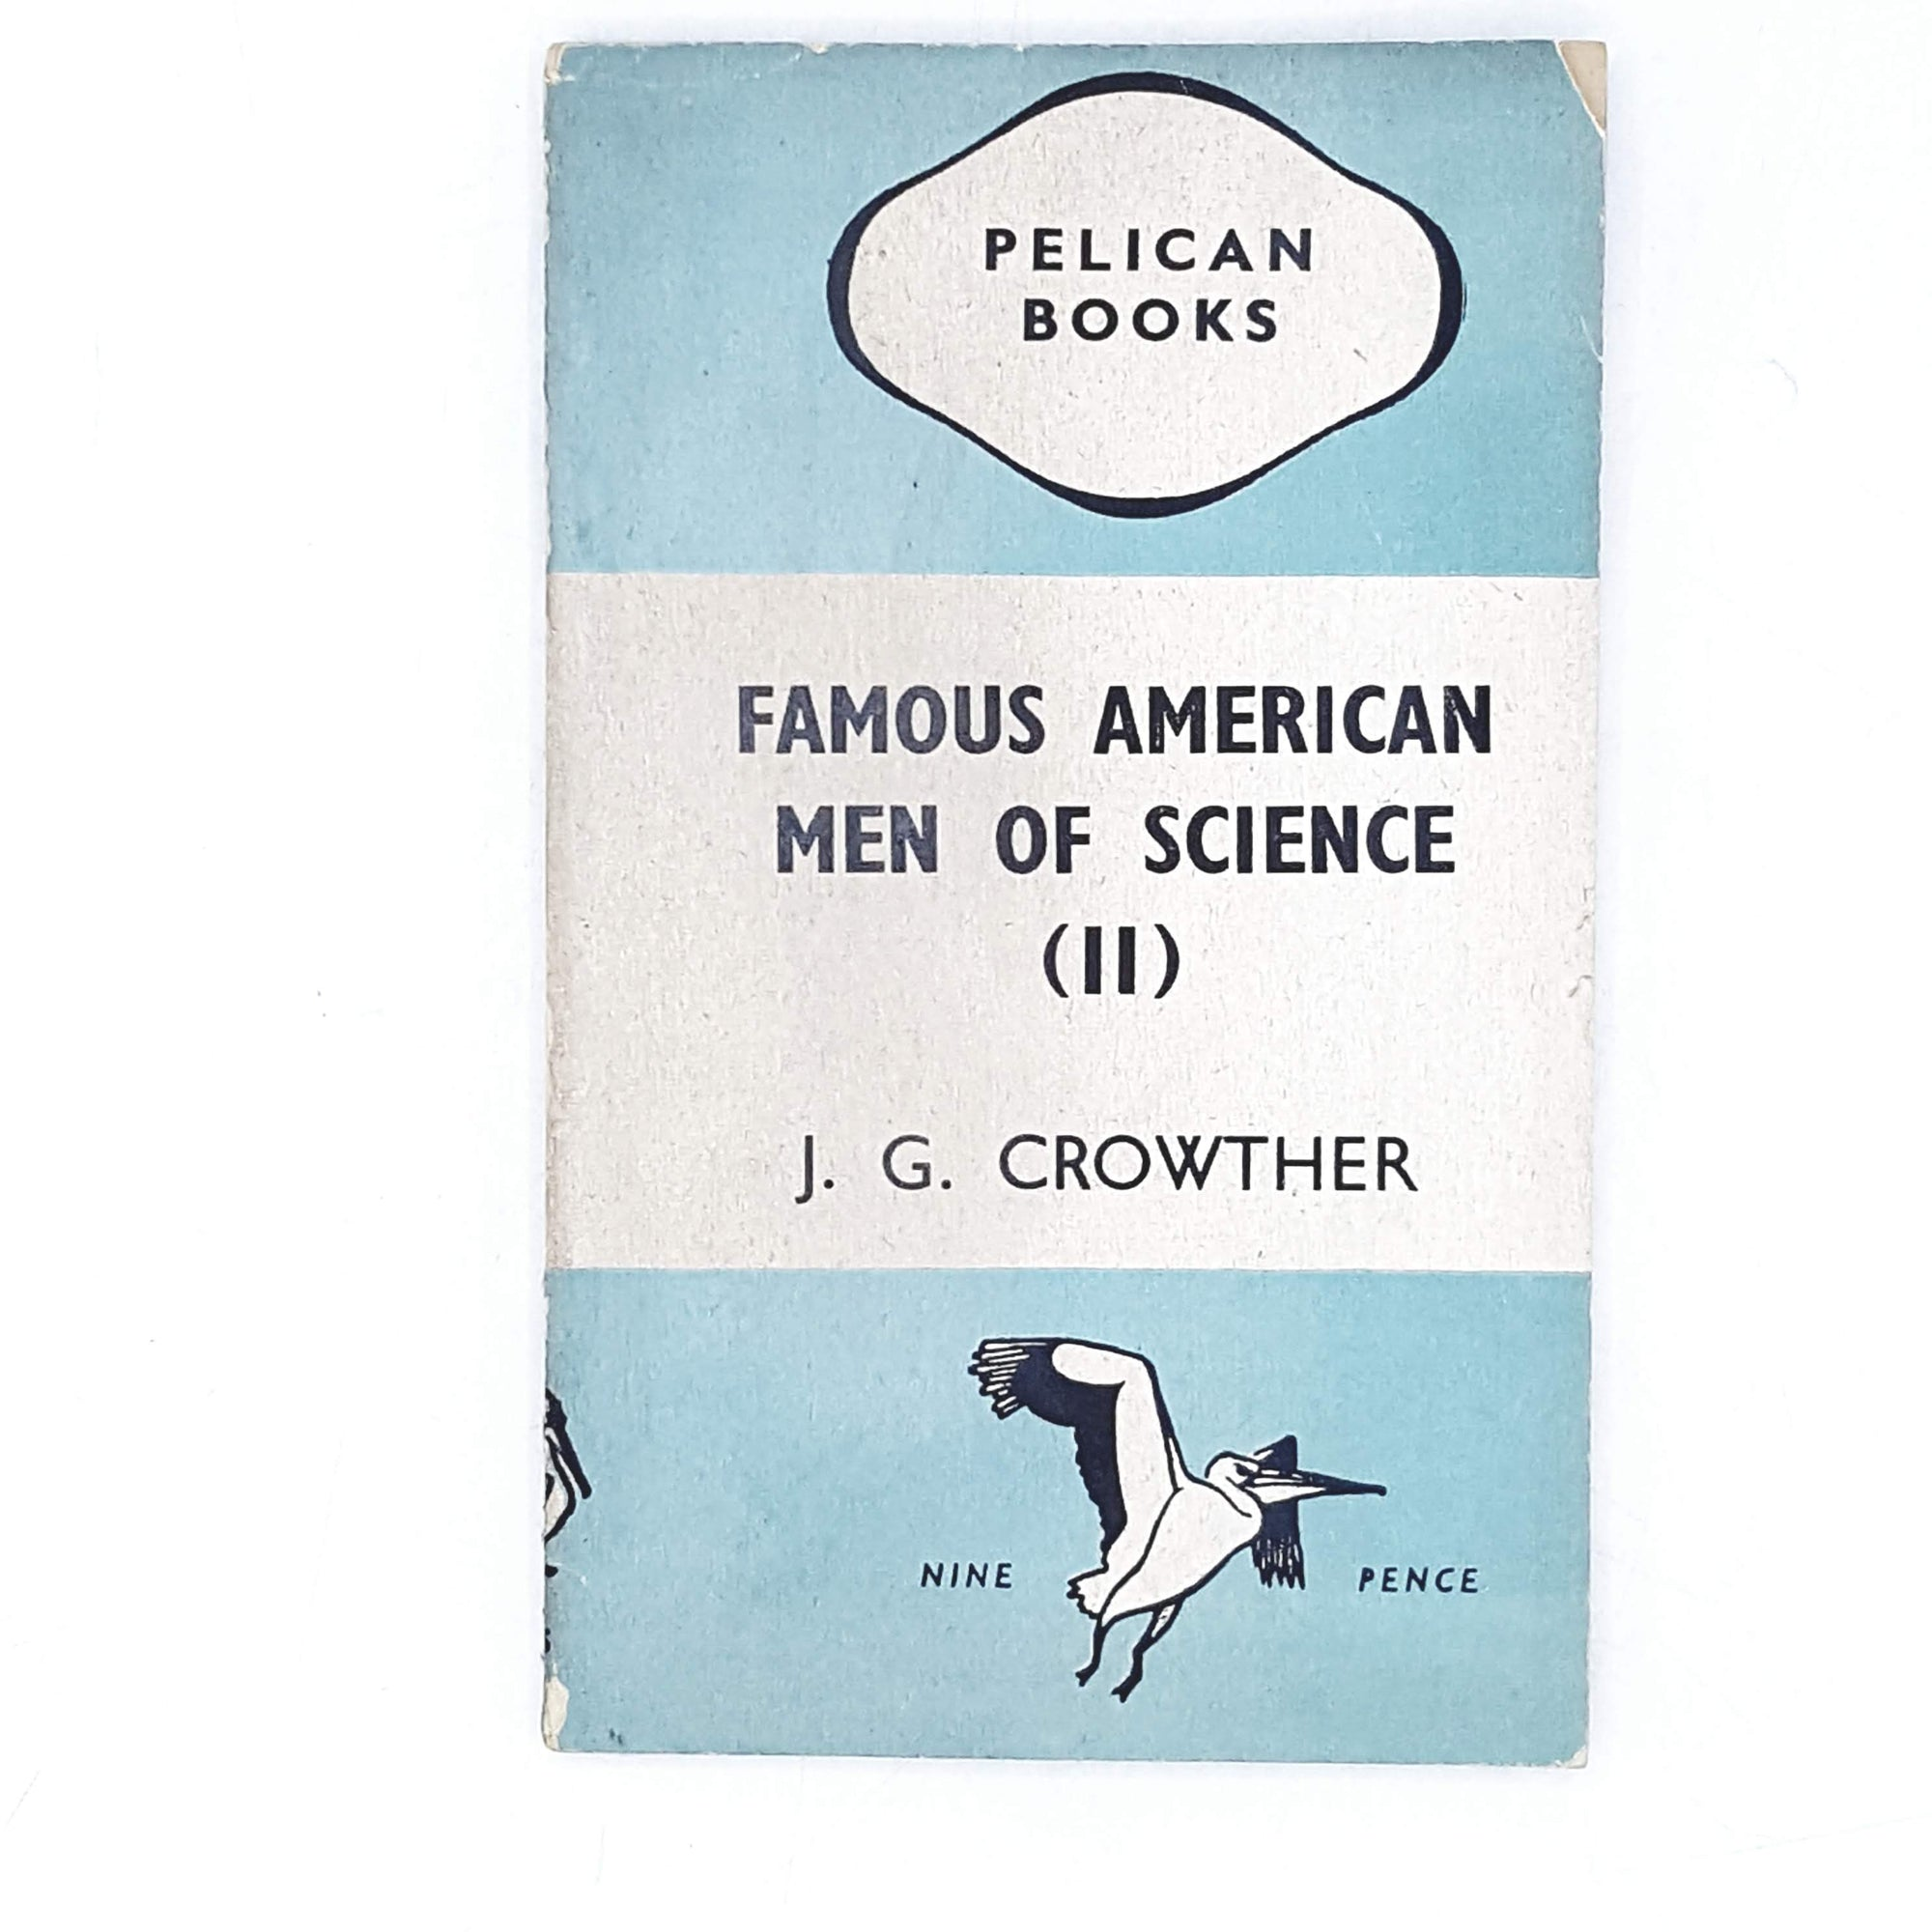 vintage-pelican-famous-american-men-of-science-ii-by-j-g-crowther-1944-antique-pale-blue-country-house-library